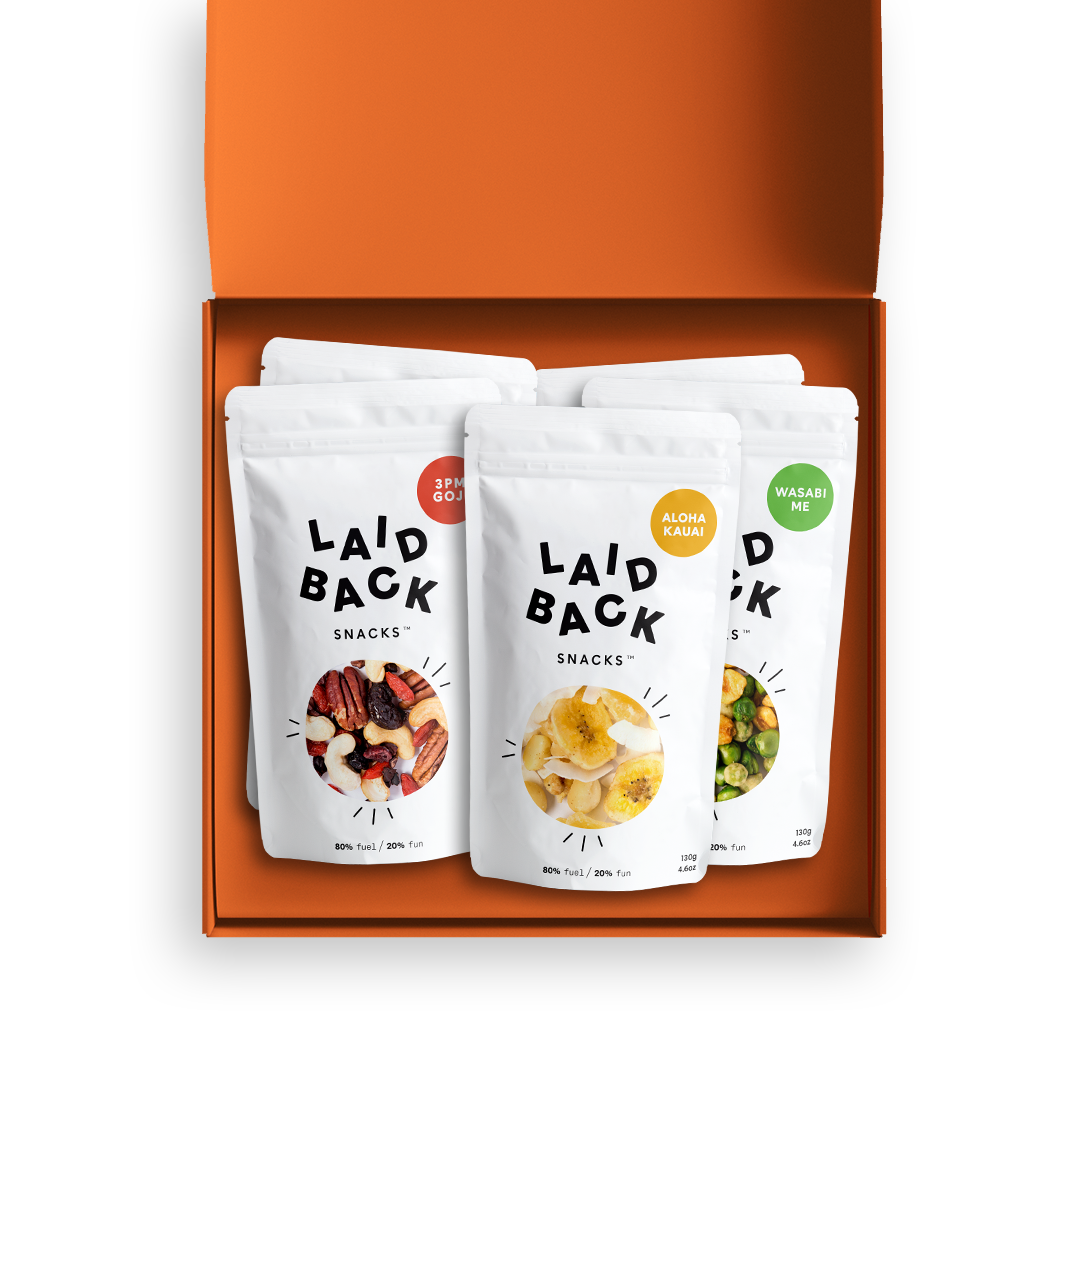 Laid Back Snacks box with packs